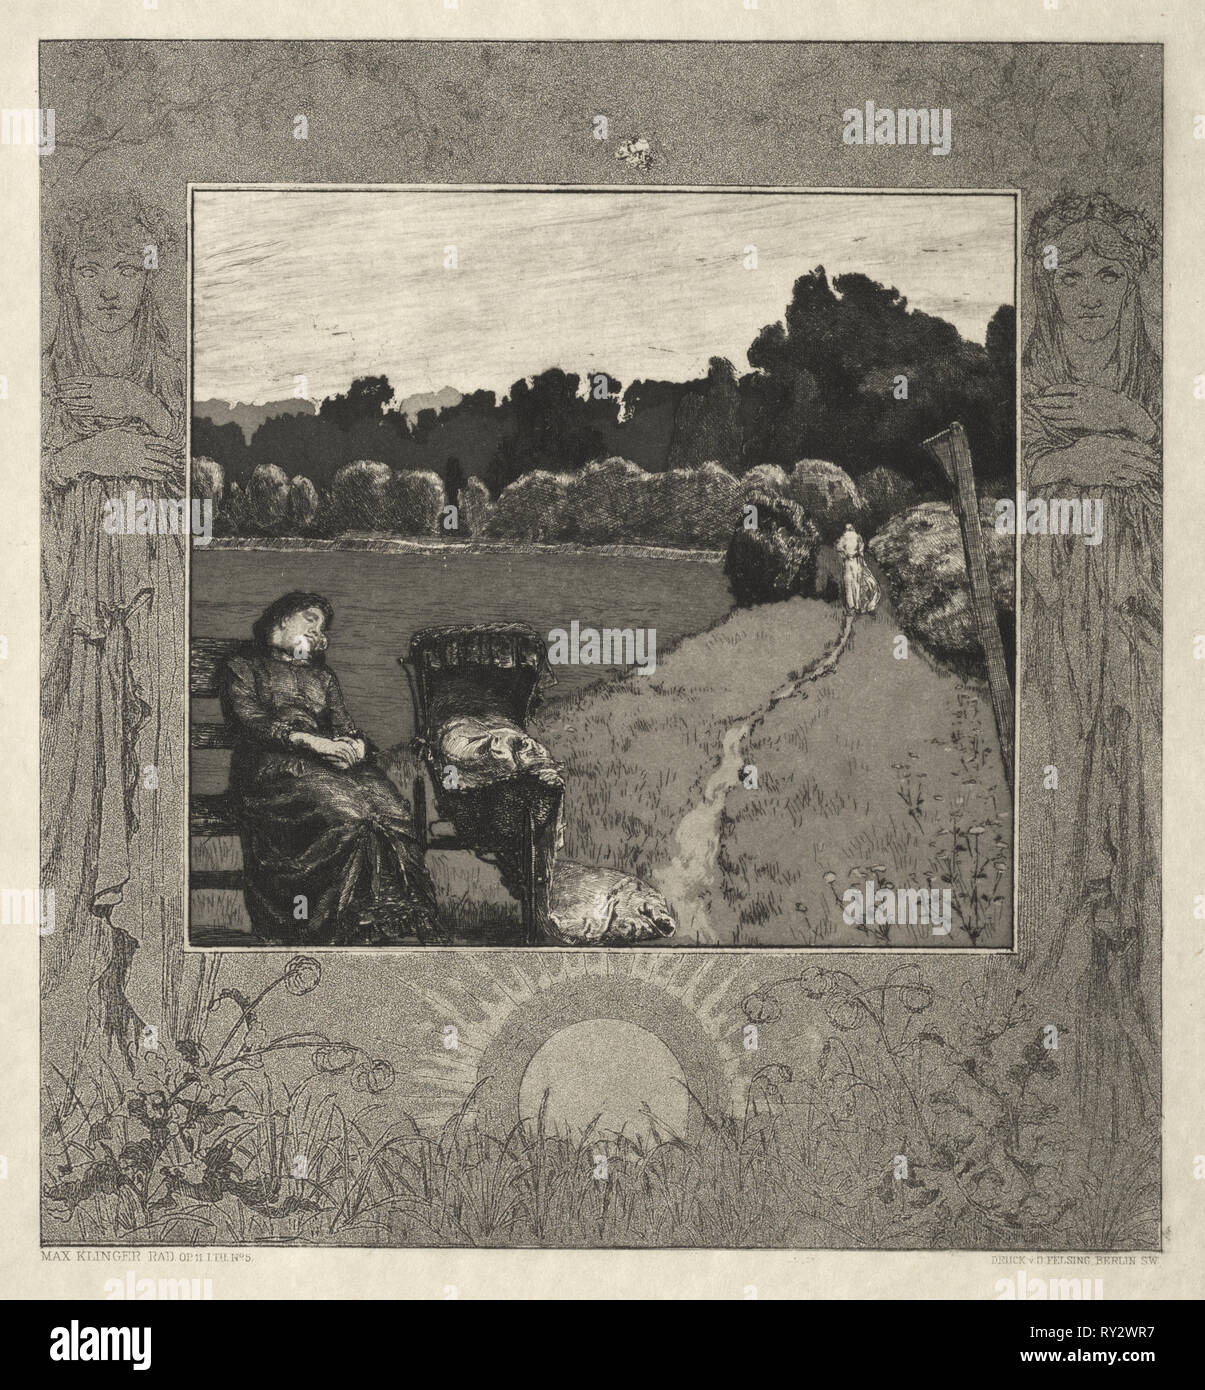 Child, from On Death, Part I, Opus XI (Kind, Vom Tode, Erster Teil, Opus XI), 1889. Max Klinger (German, 1857-1920). Etching and aquatint - Stock Image